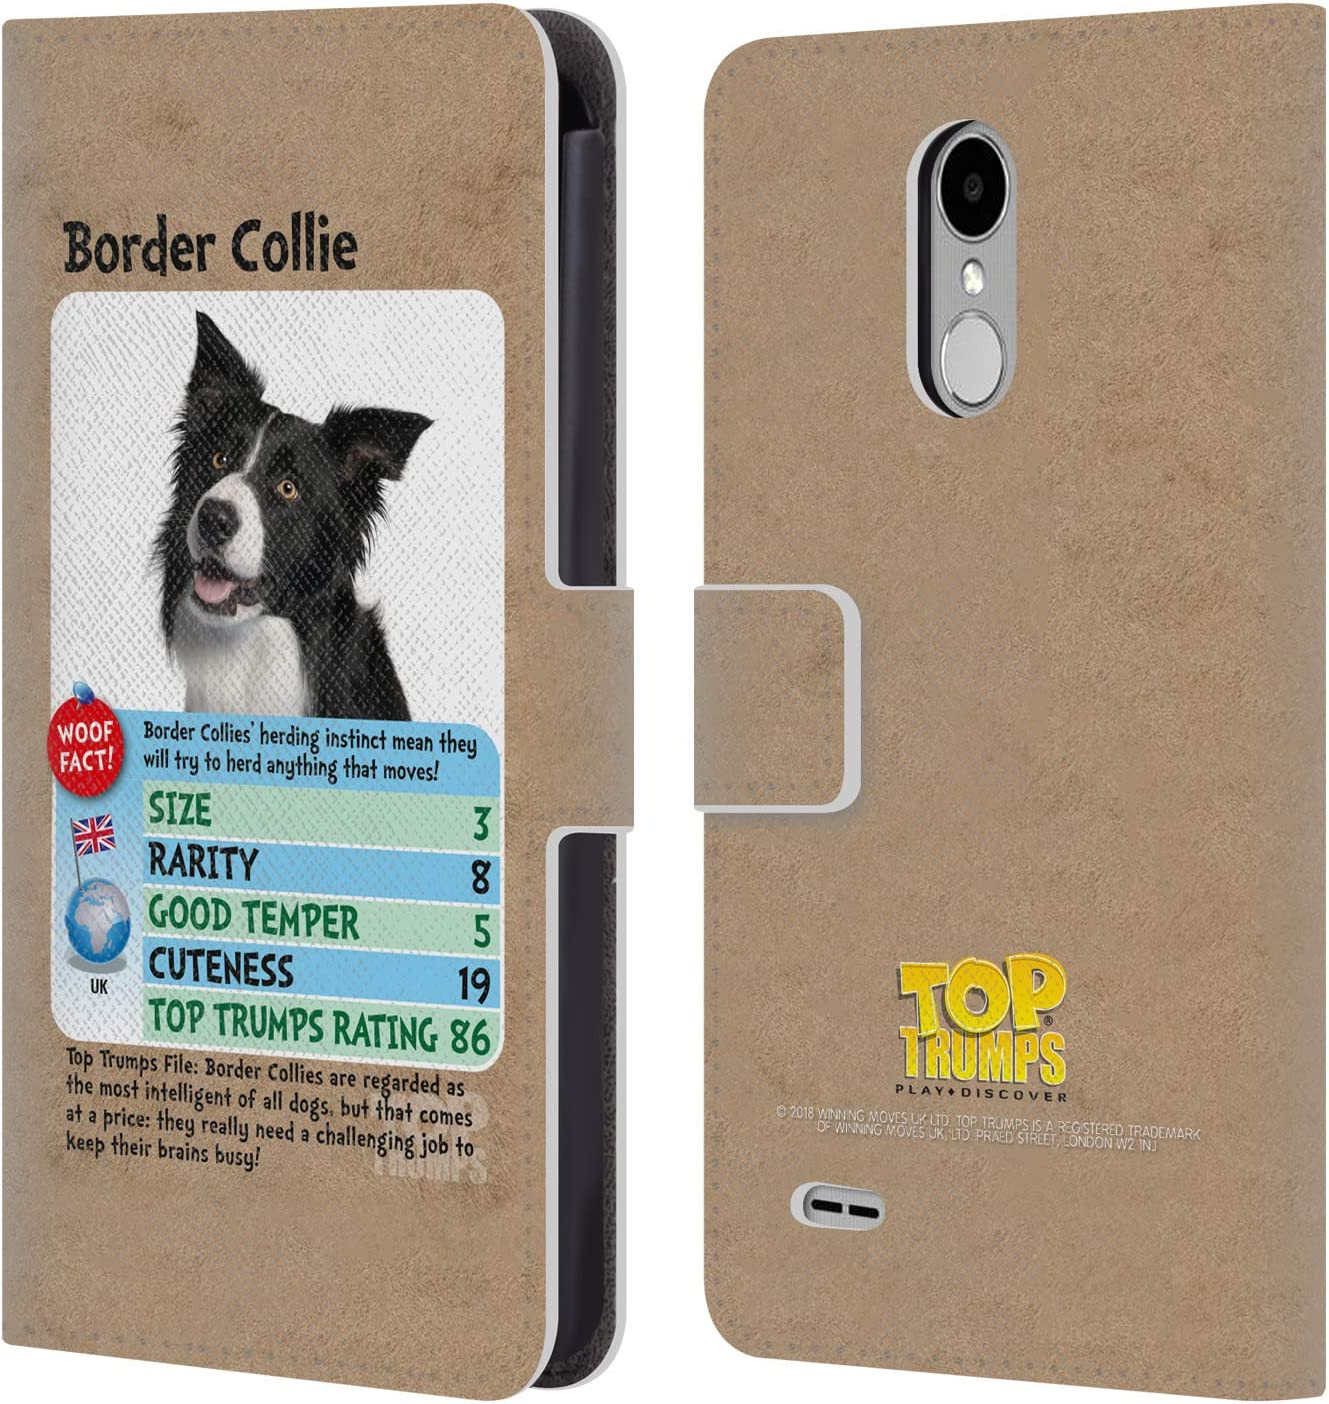 Official Top Trumps Border Collie Dogs 2 Leather Book Wallet Case Cover Compatible for LG Stylus 3 / K10 Pro